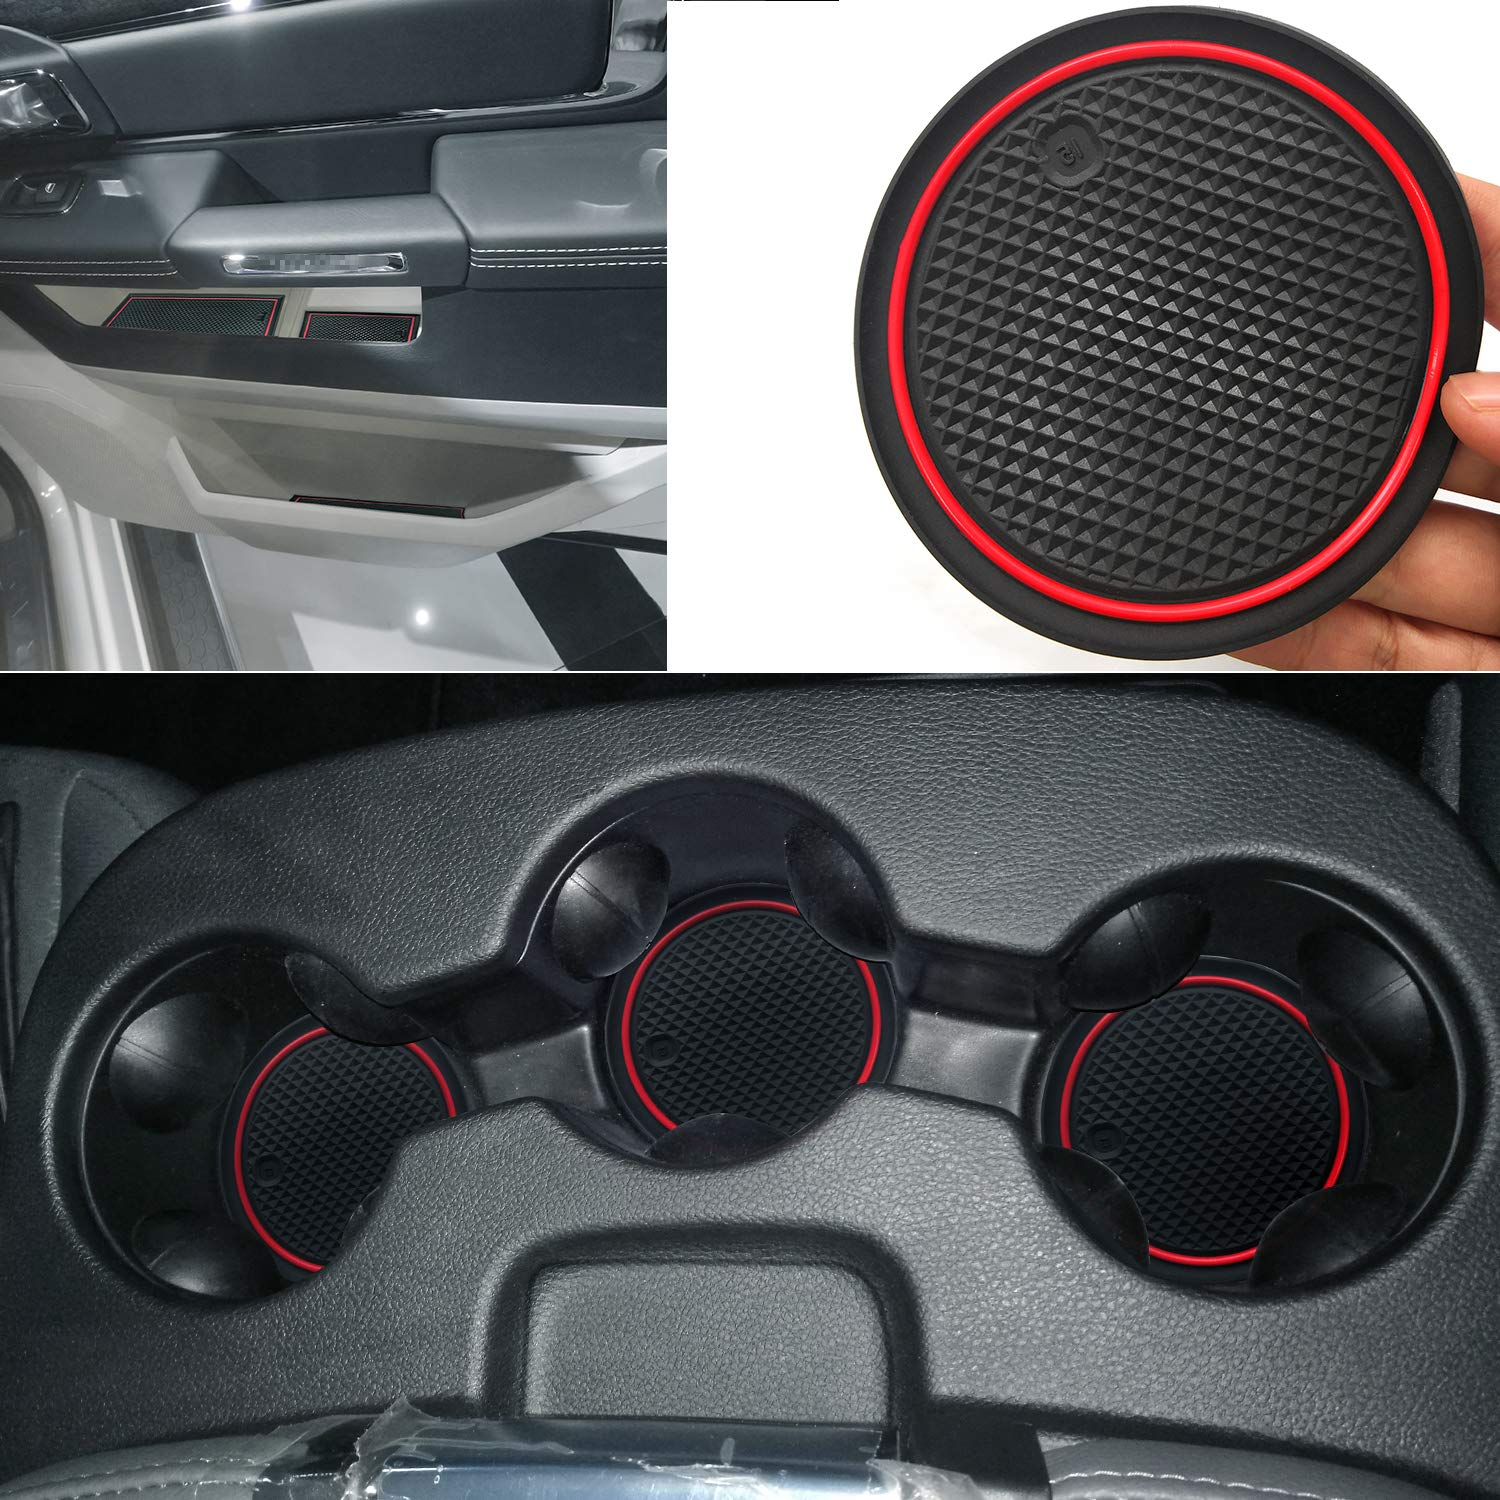 1 PCS Auovo Dashboard Mat Liner for Dodge Ram Pickup 1500 2500 3500 2011-2018 Interior Accessories Car Dash Trim Rubber Pad Cover Soft Tray Red Trim